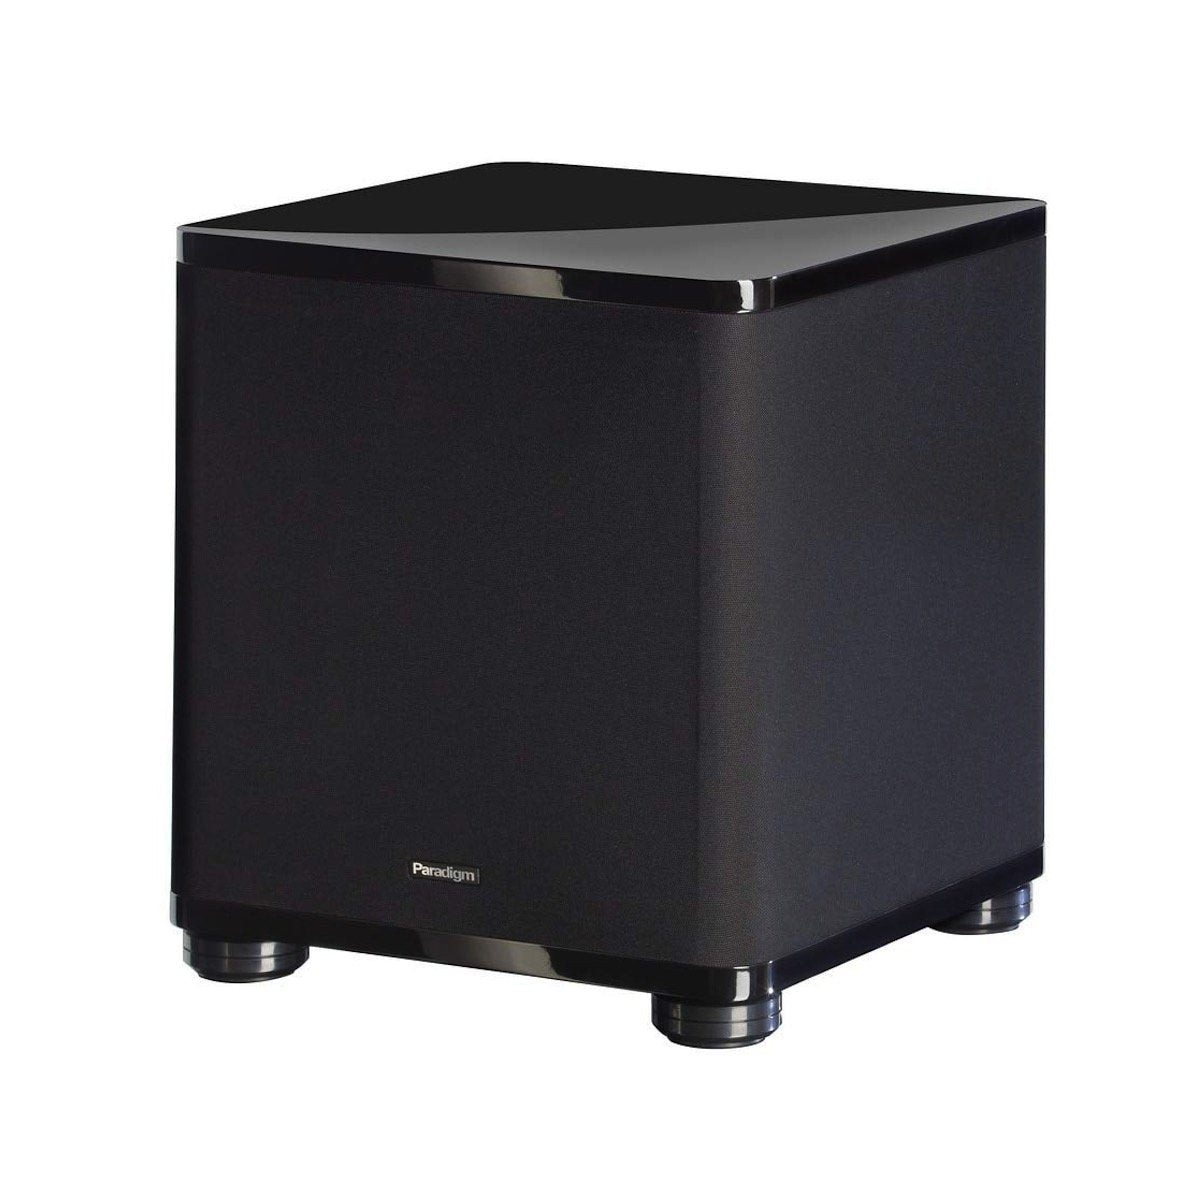 Paradigm Cinema Sub - Active Subwoofer